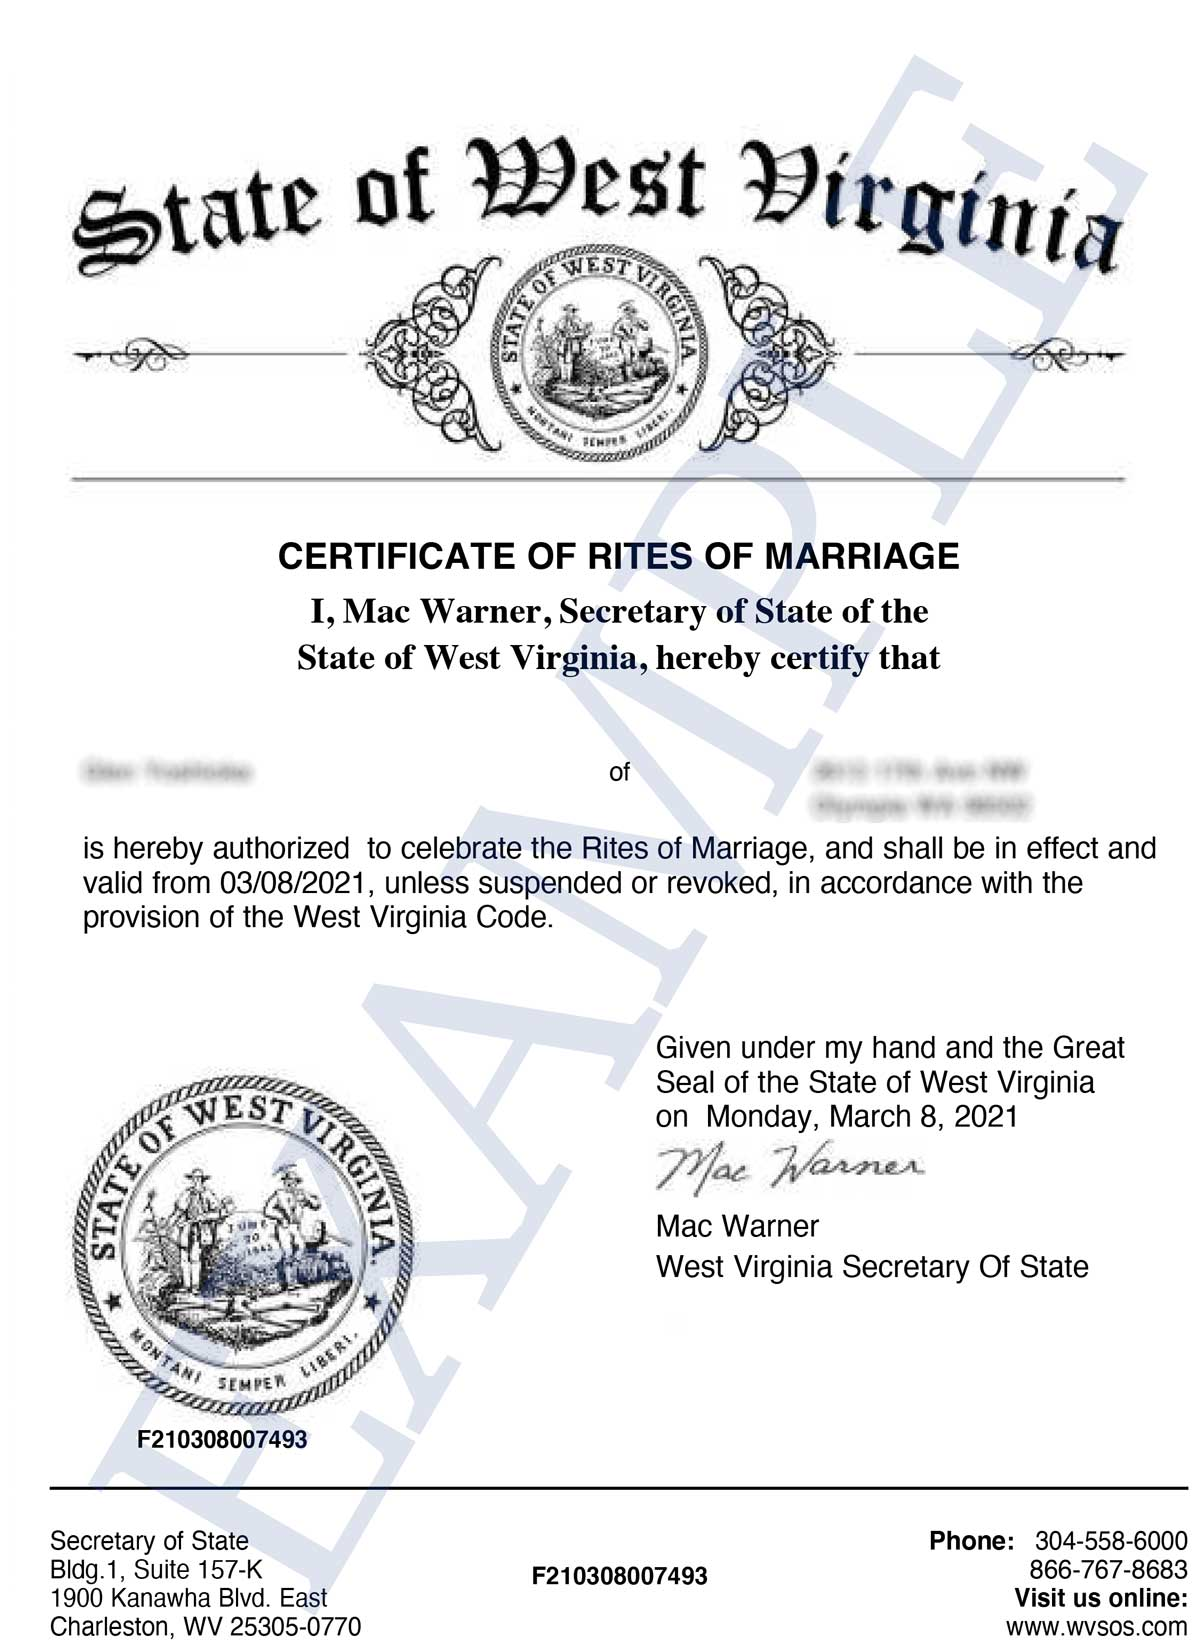 West Virginia Secretary of State Marriage Celebrant Approval Certificate